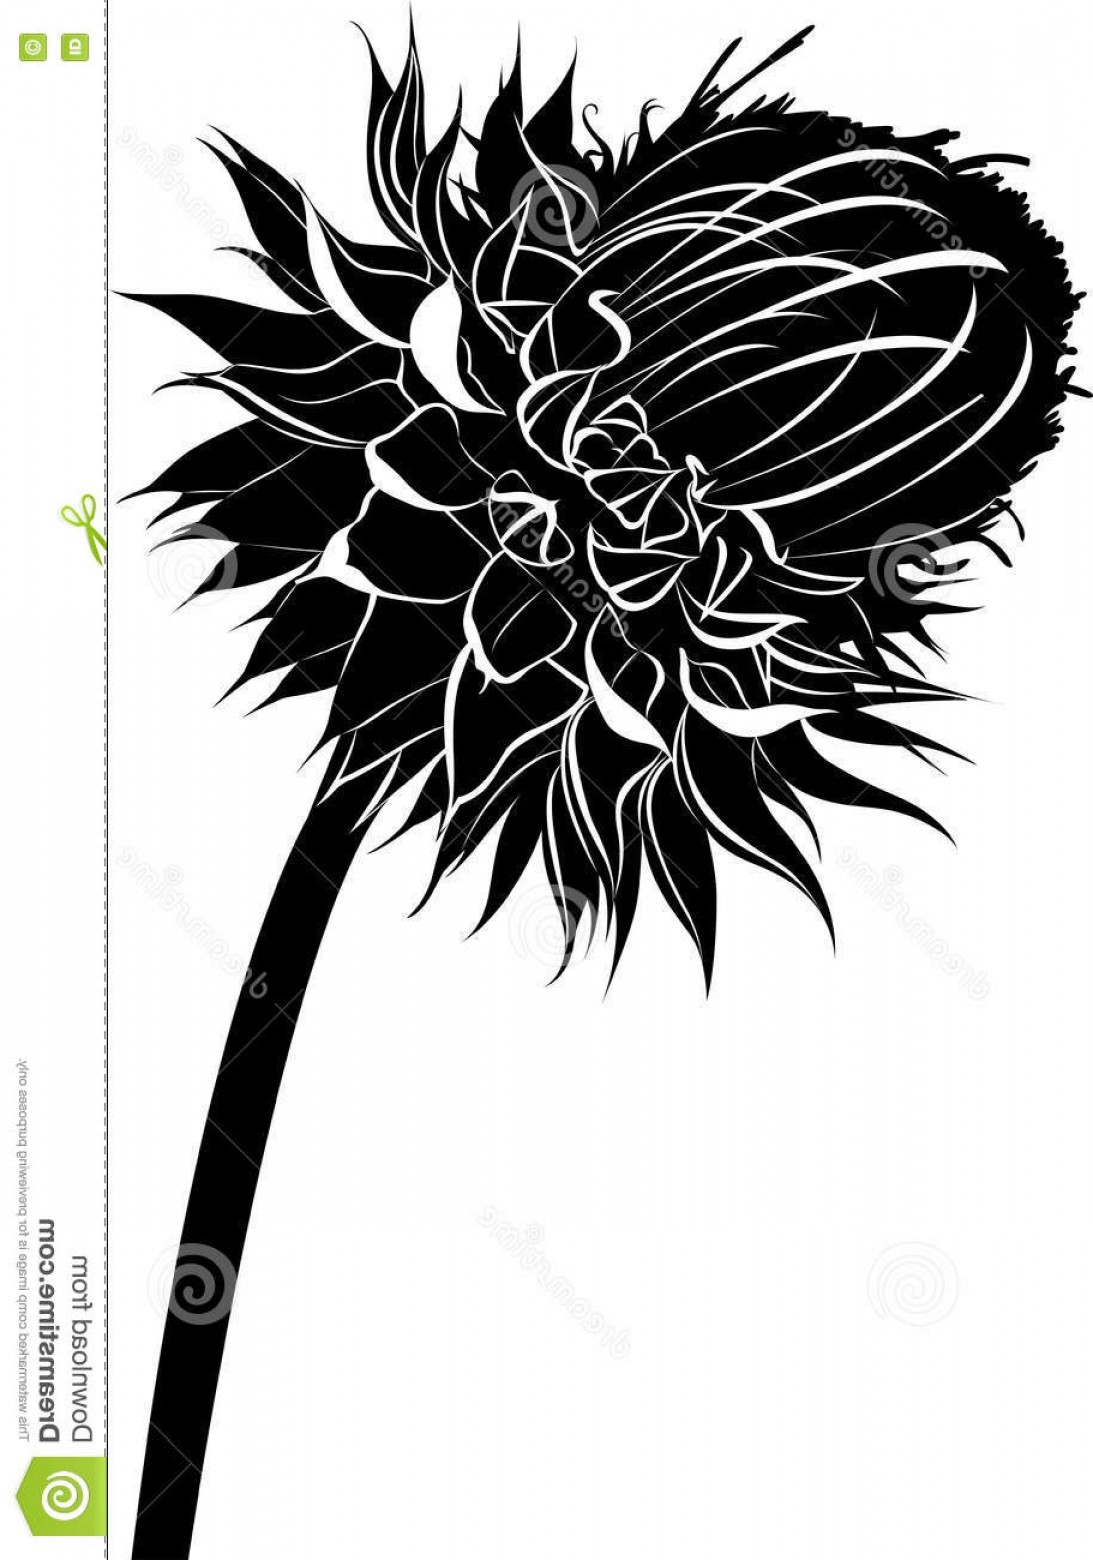 Spring Vector Silhouette: Stock Illustration Milk Thistle Flower Bloom Spring Vector Black Silhouette Isolated White Background Image